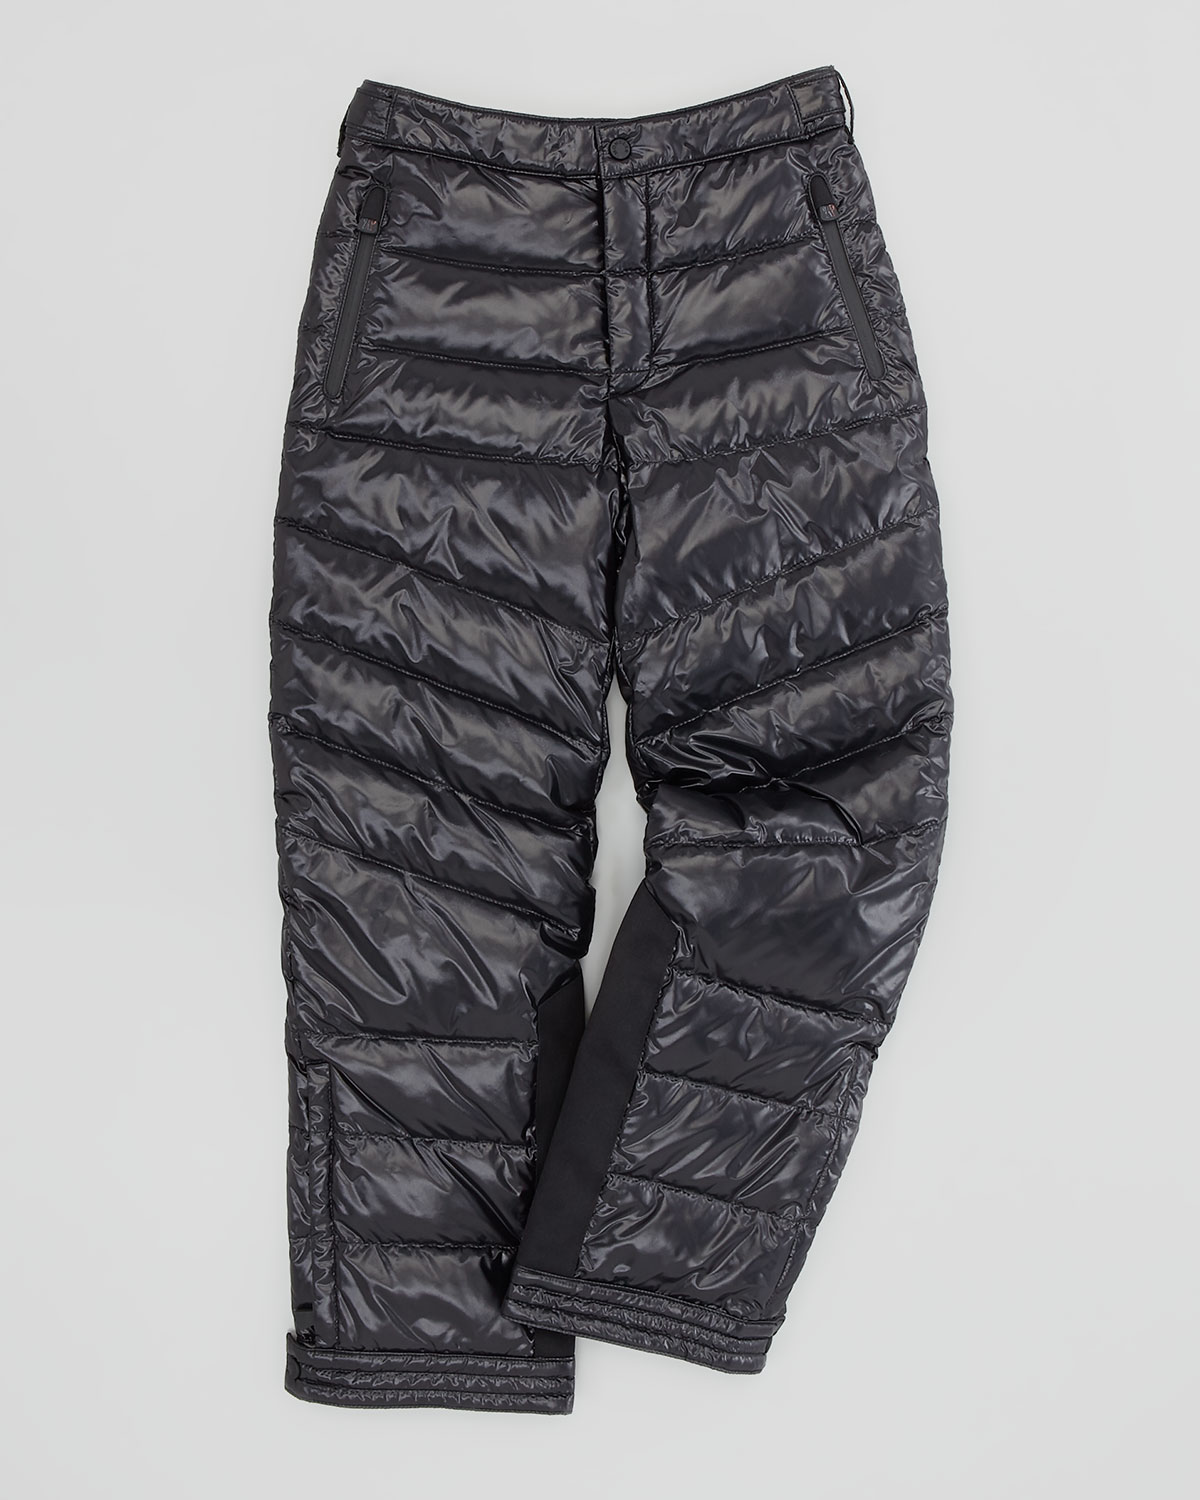 Lyst Moncler Quilted Nylon Ski Pants Black Sizes 26 In Black